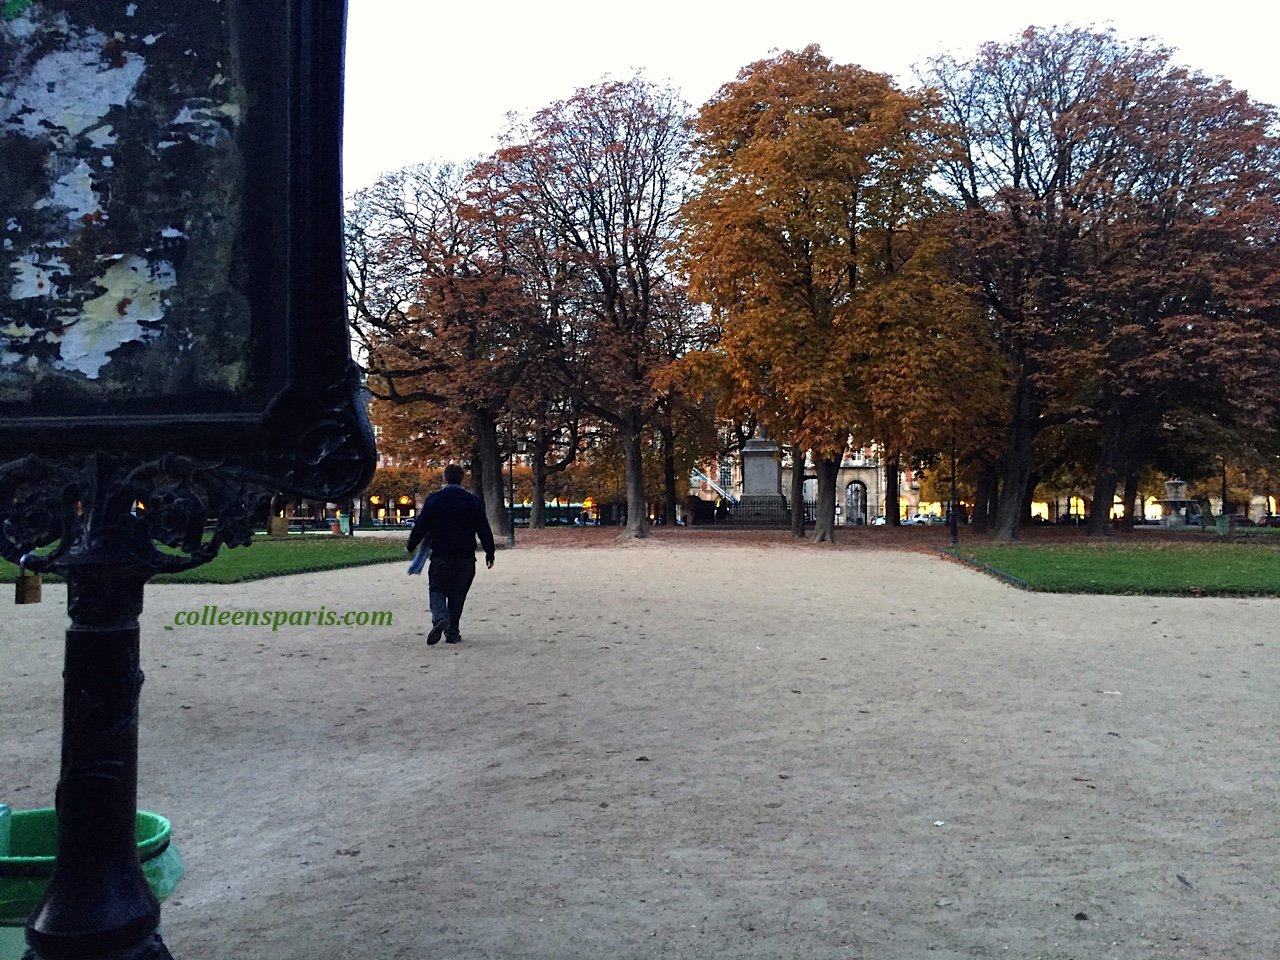 The gardien ending his day at Square Louis XIII - Place des Vosges in the 4th arrondissement of Paris walking toward the statue.